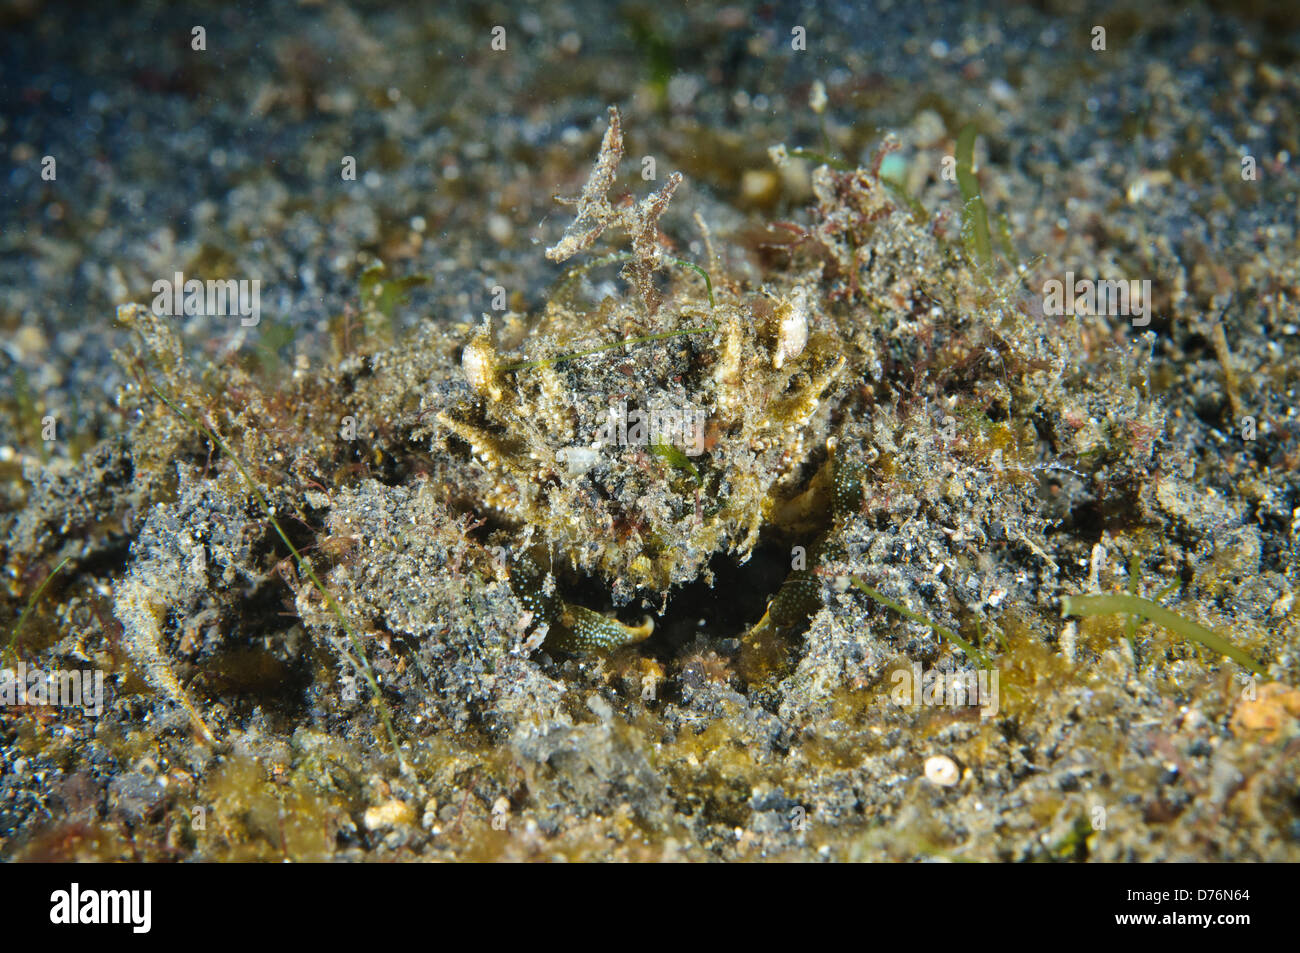 Unknown species of camouflaged decorator crab, Lembeh Strait, Sulawesi, Indonesia. - Stock Image